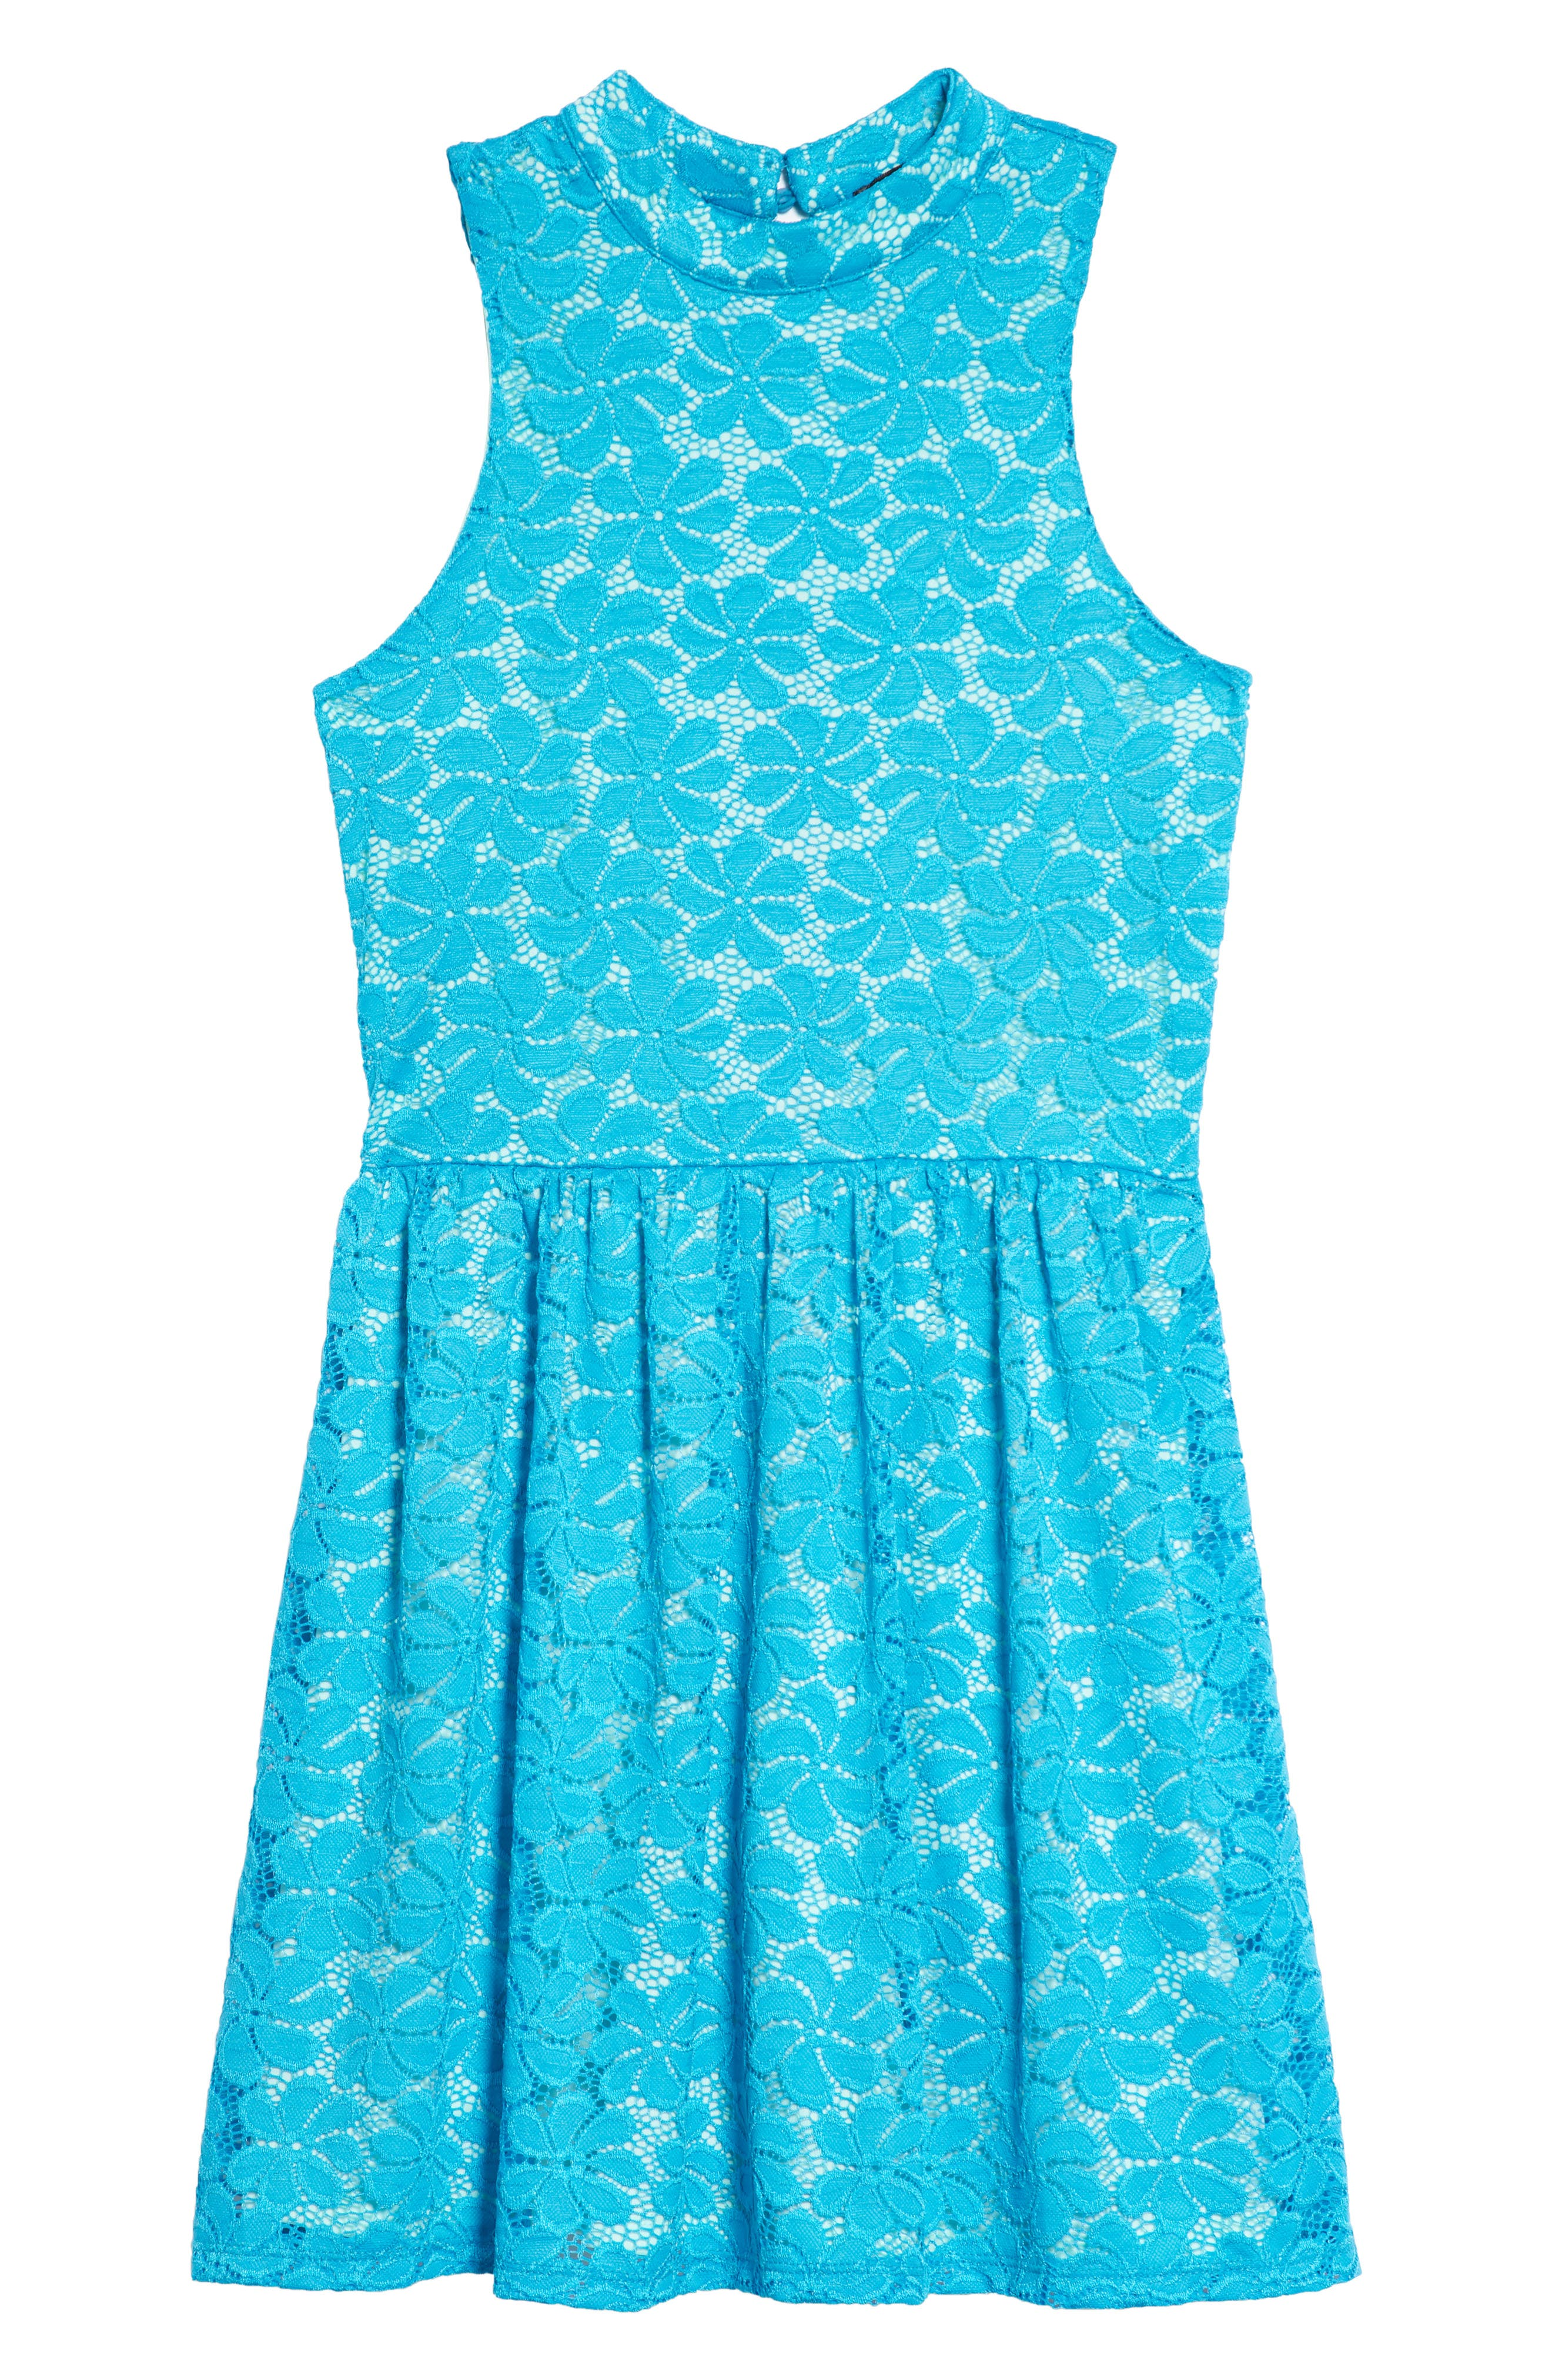 Hailee Lace Dress,                             Main thumbnail 1, color,                             Teal